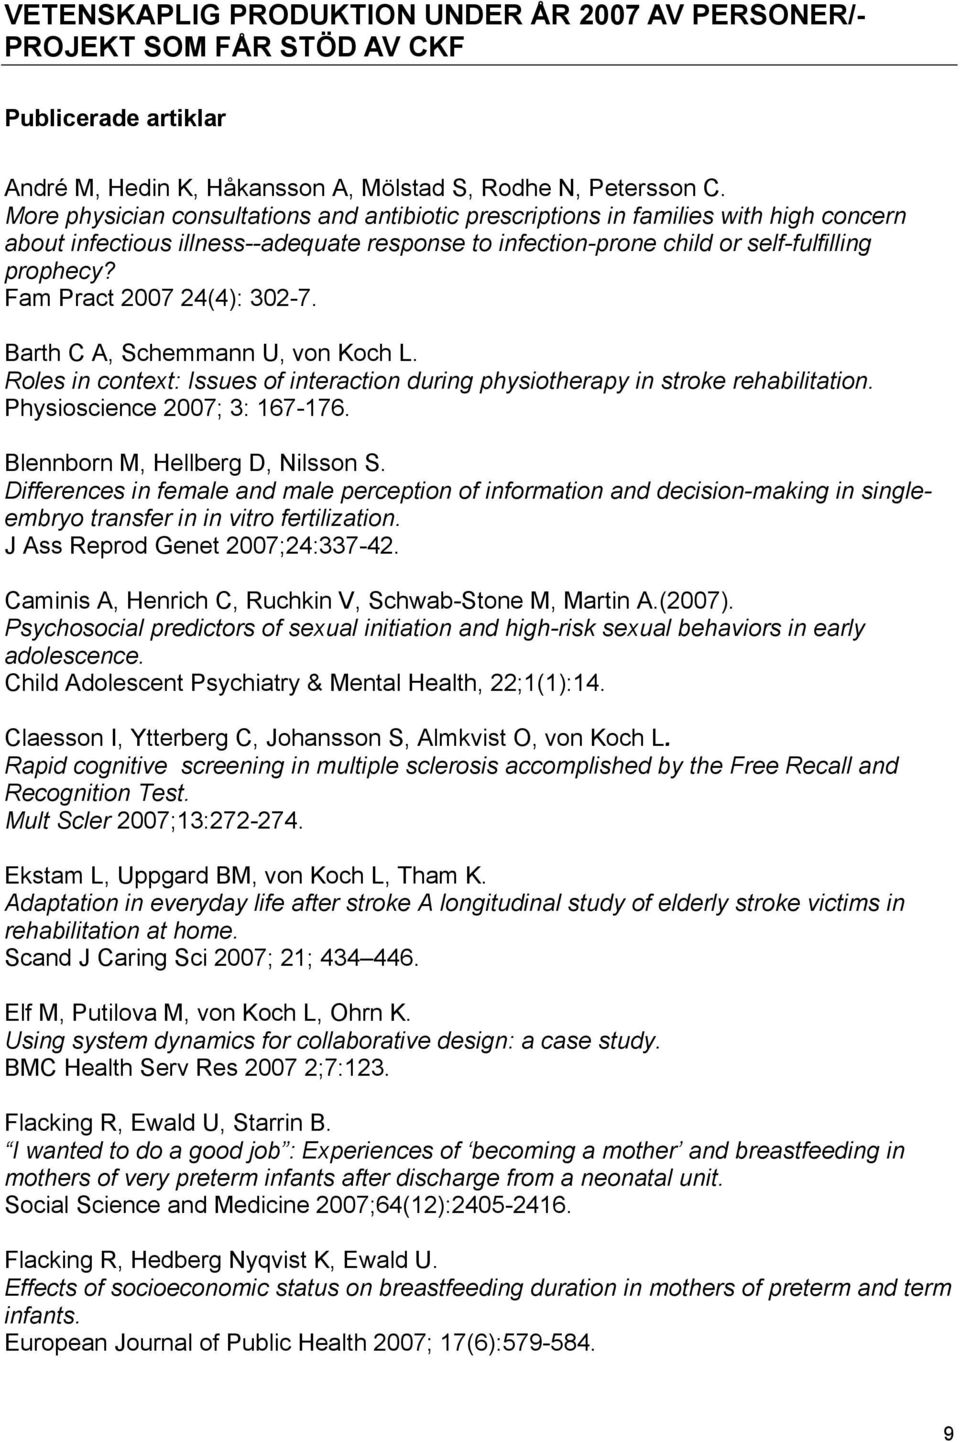 Fam Pract 2007 24(4): 302-7. Barth C A, Schemmann U, von Koch L. Roles in context: Issues of interaction during physiotherapy in stroke rehabilitation. Physioscience 2007; 3: 167-176.